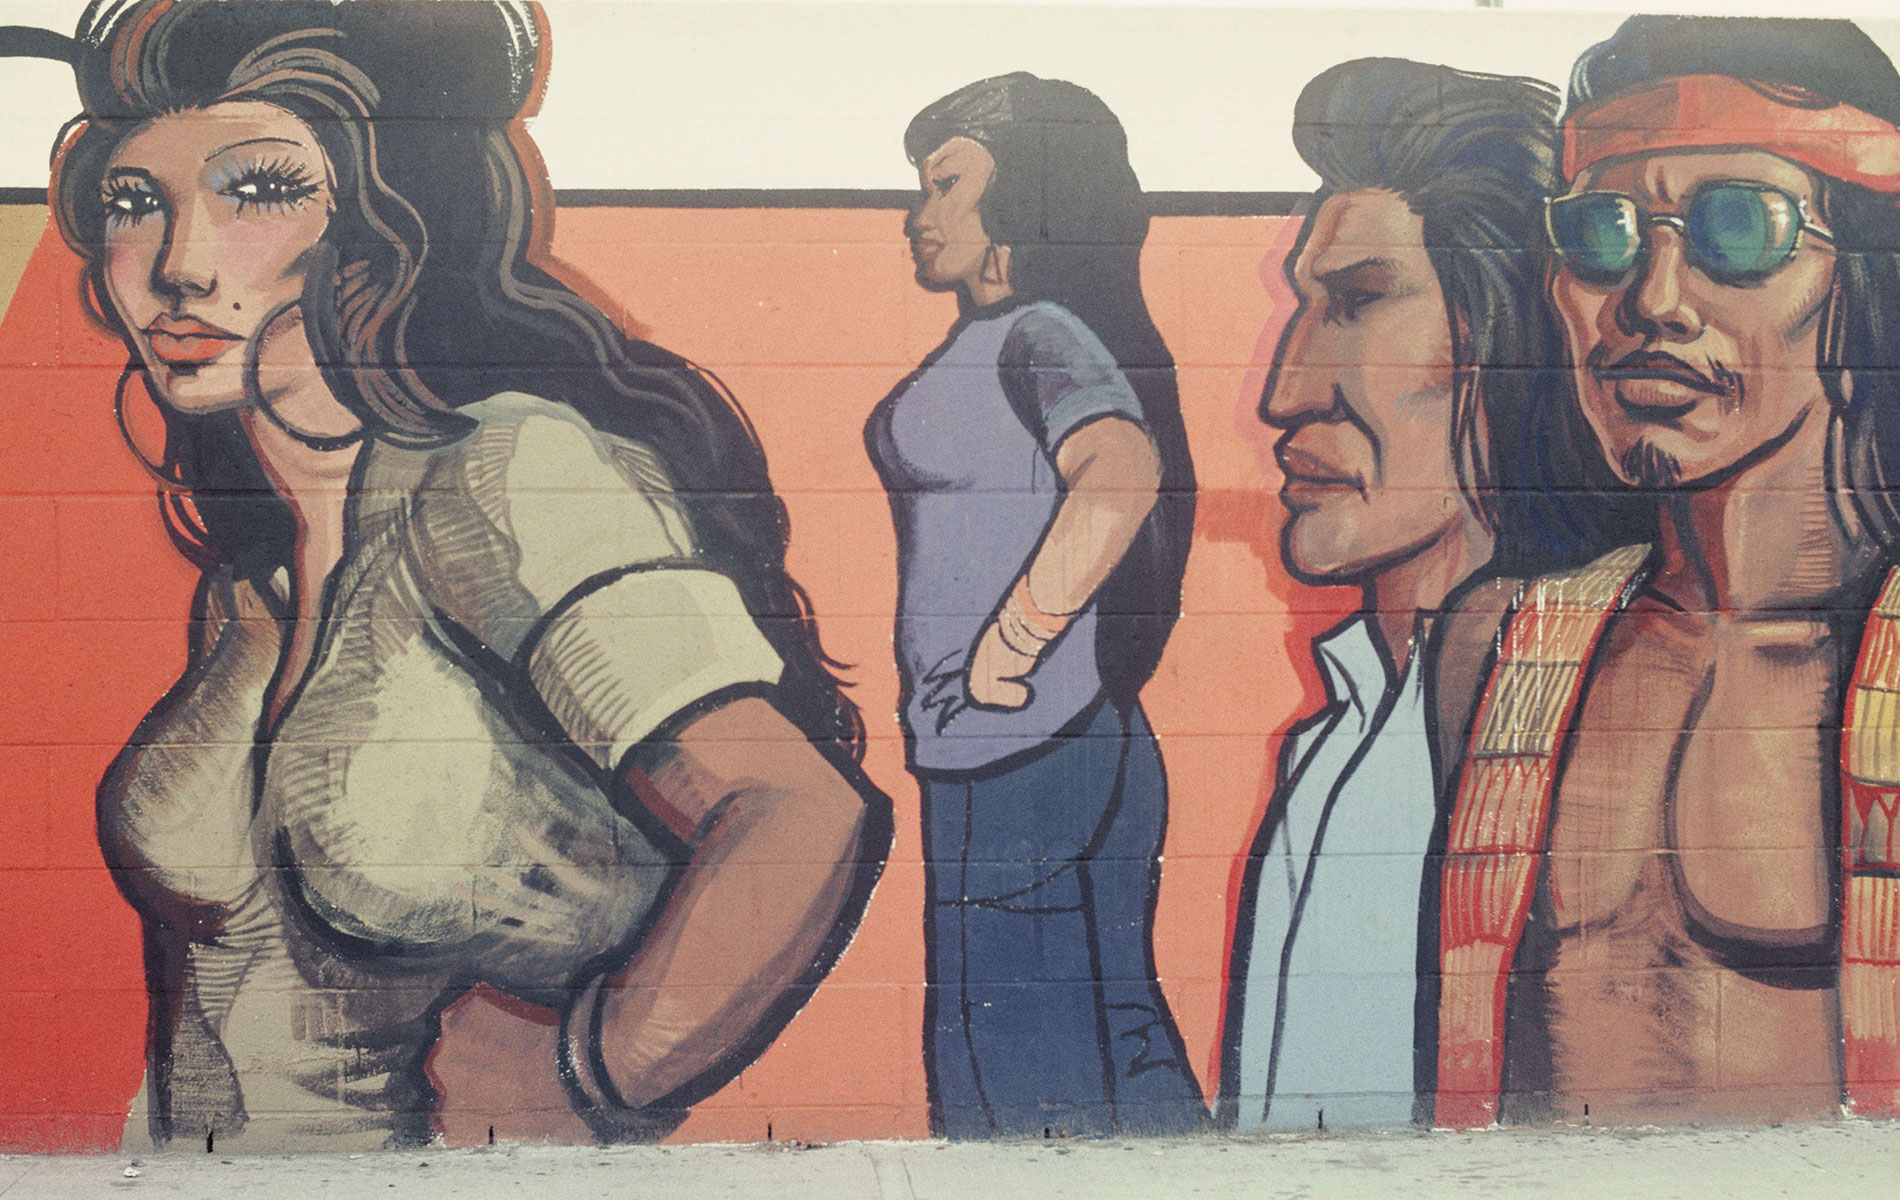 <h1>Mural detail, <em>Chicana/o Youth</em>, c. 1976</h1>